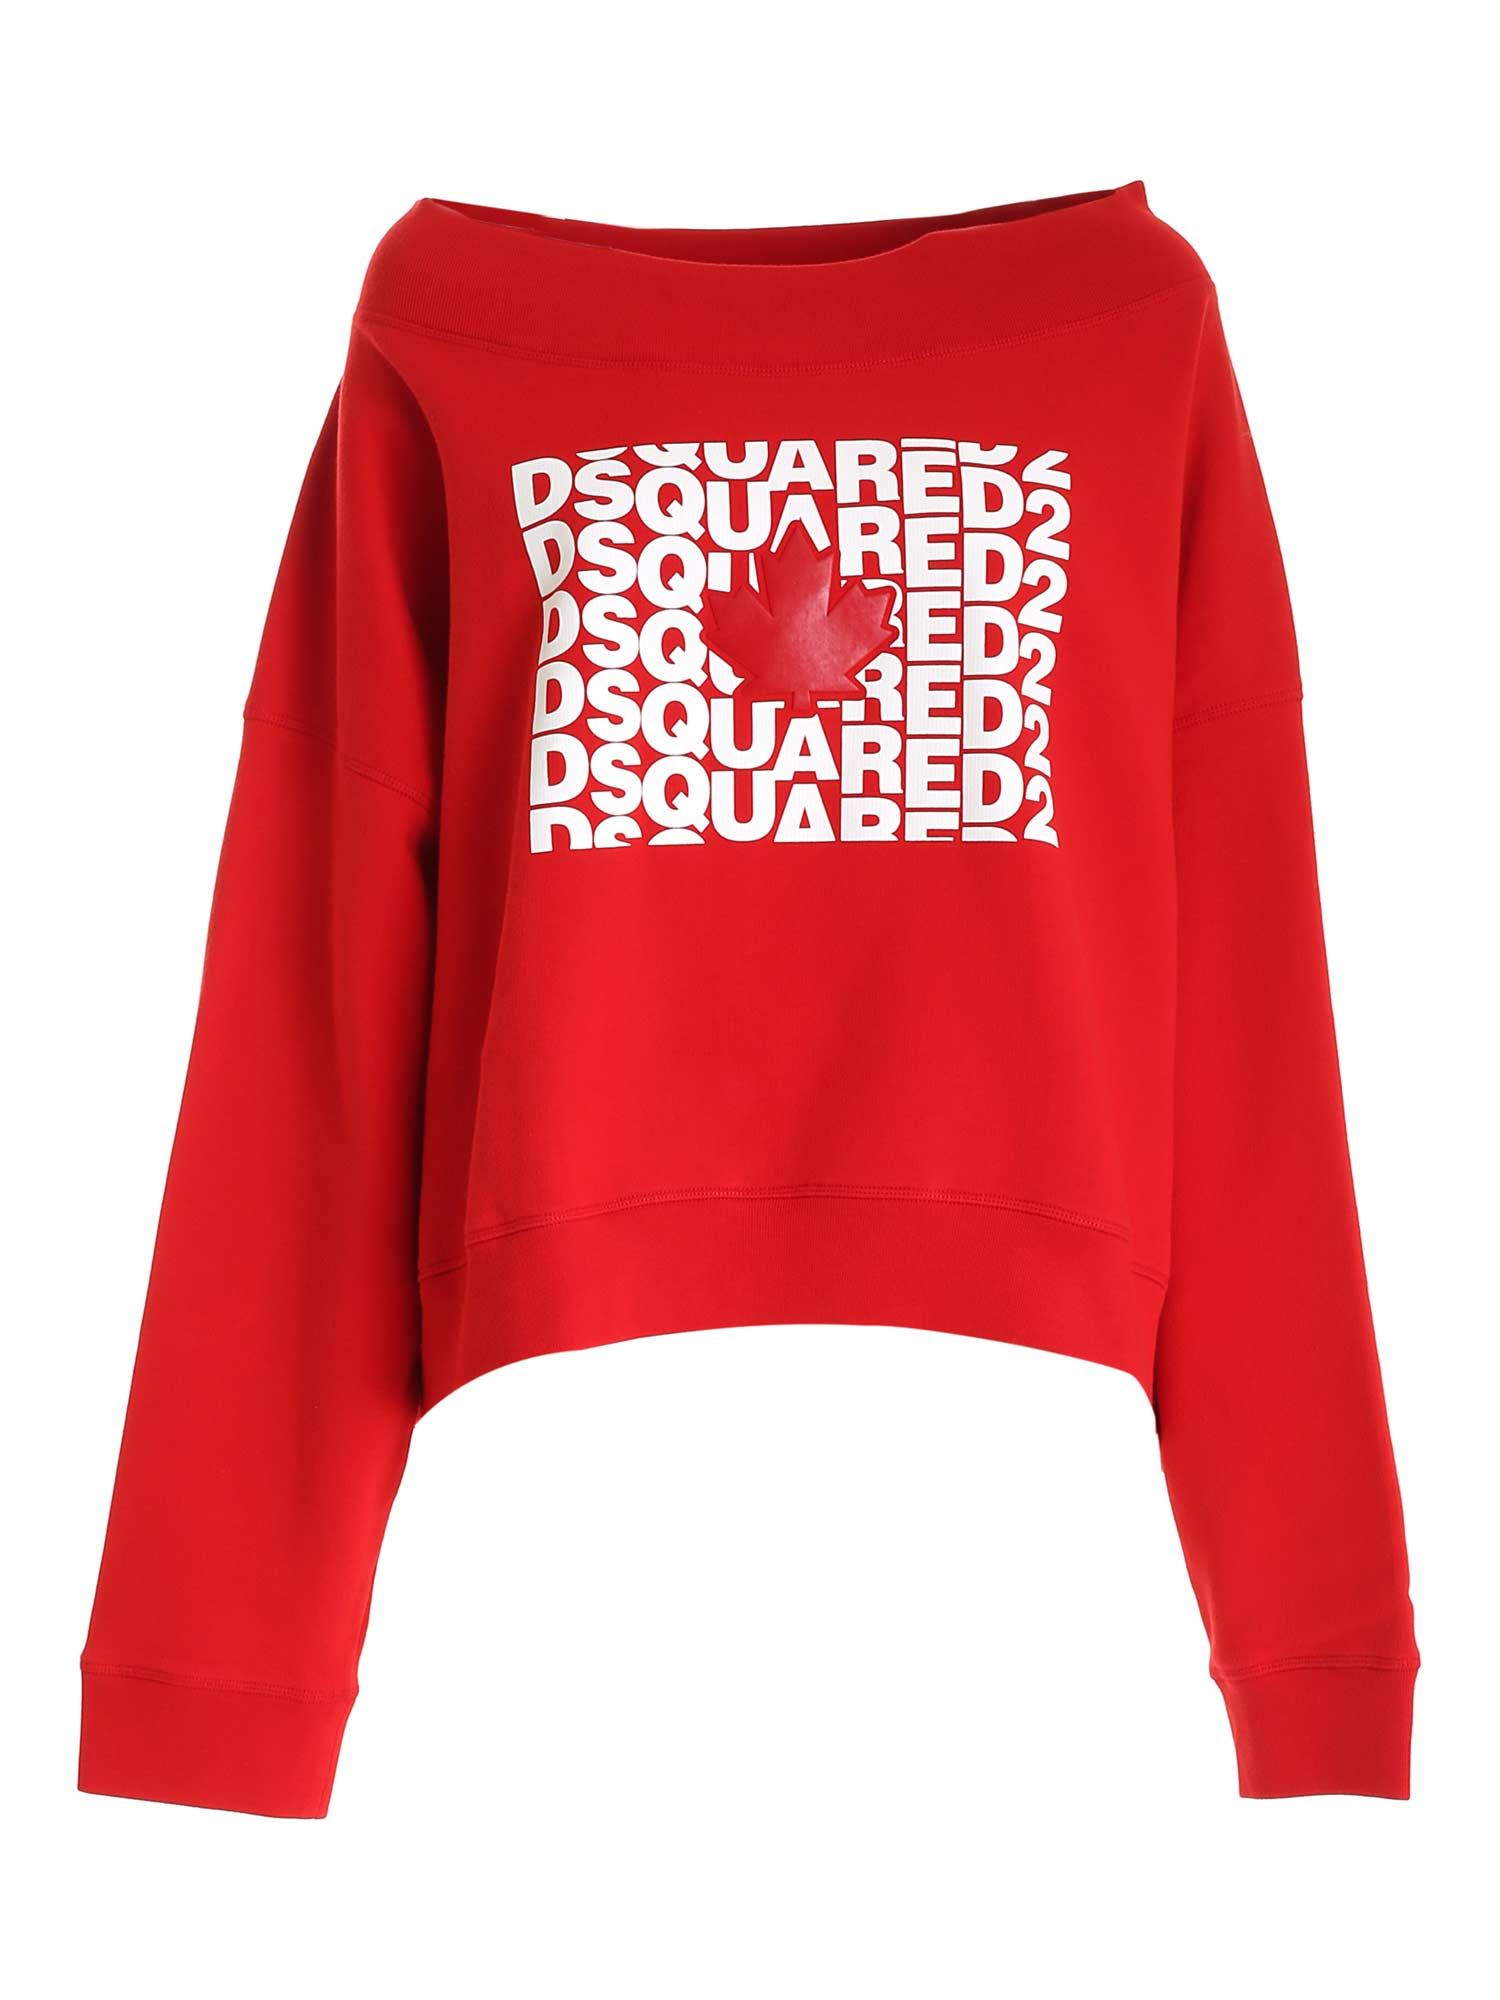 Dsquared2 OVERSIZED LOGO SWEATSHIRT IN RED